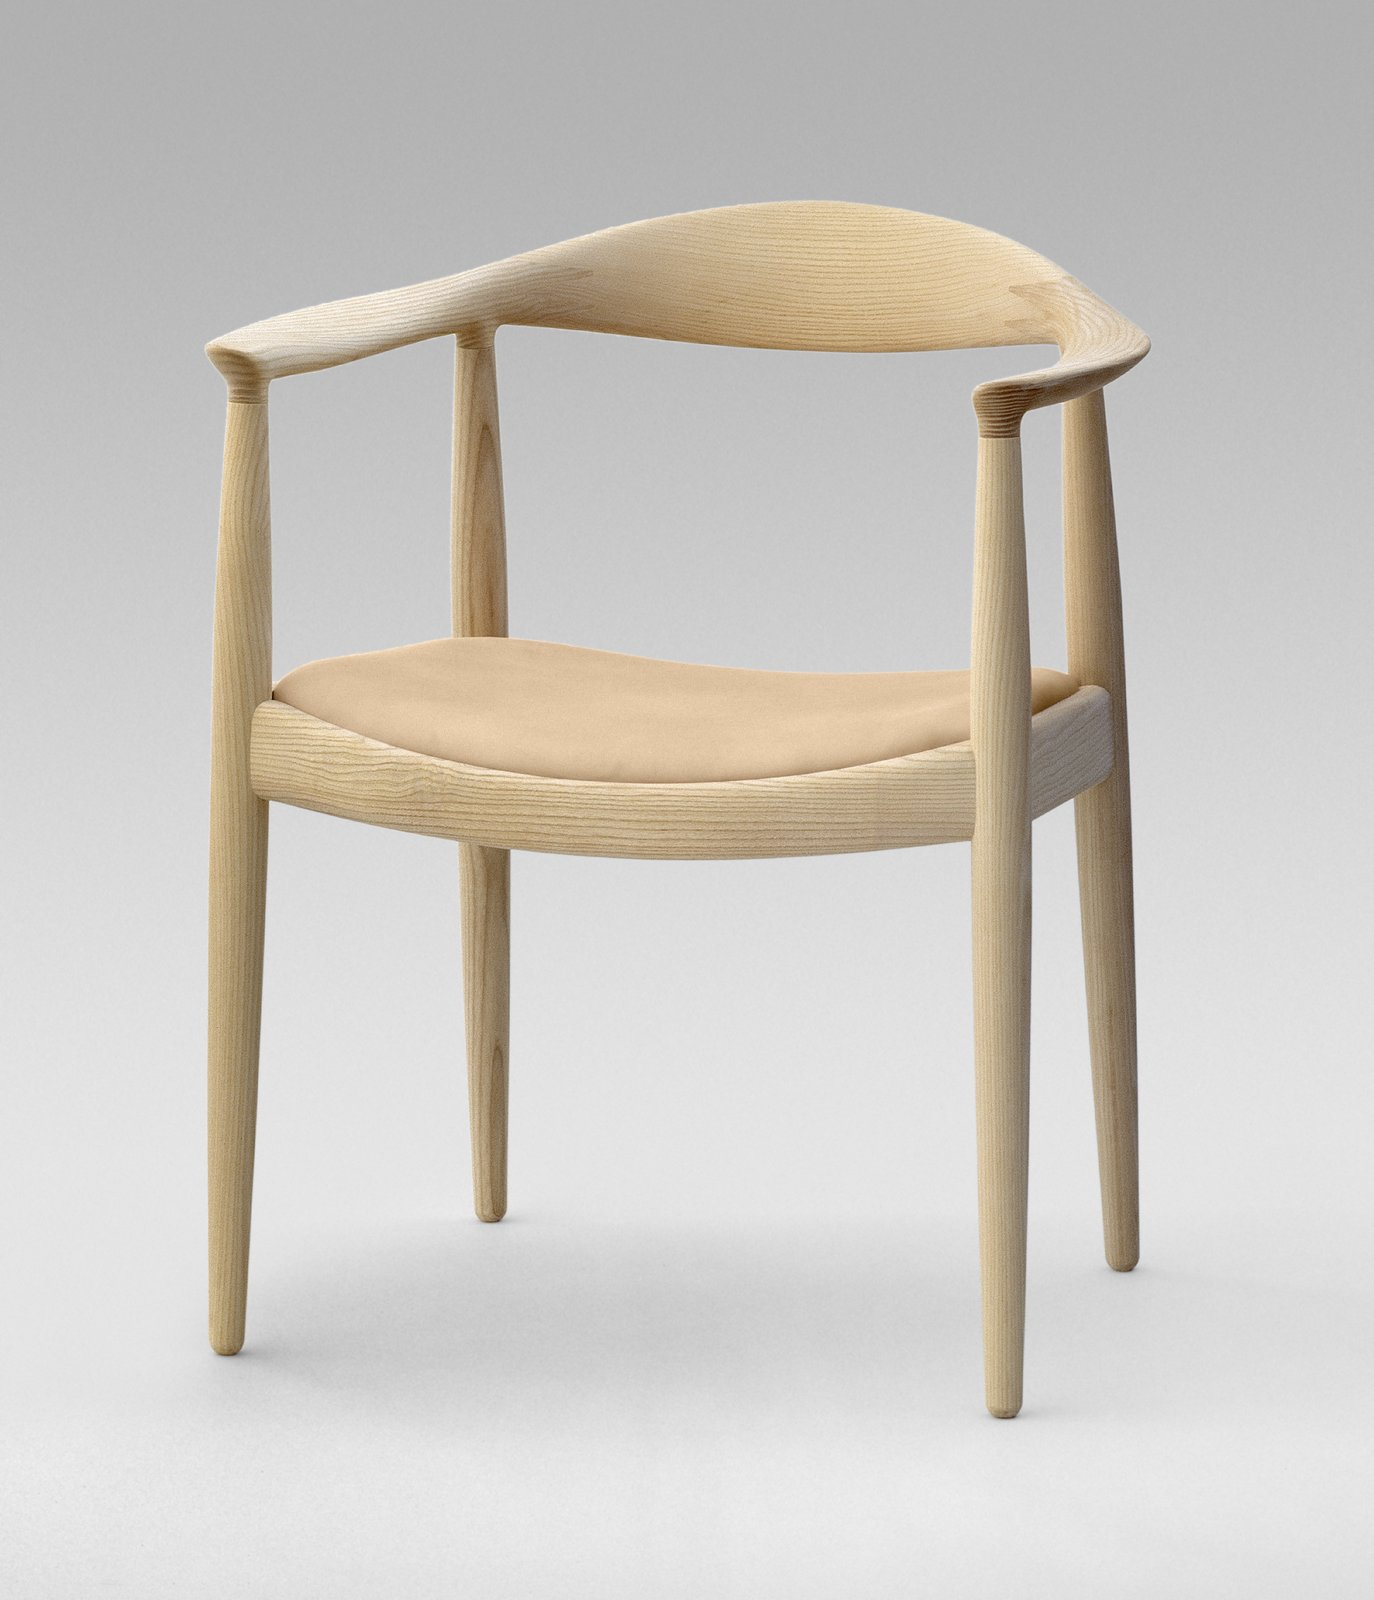 2 of 9 in 8 Iconic Chairs by Hans Wegner Dwell